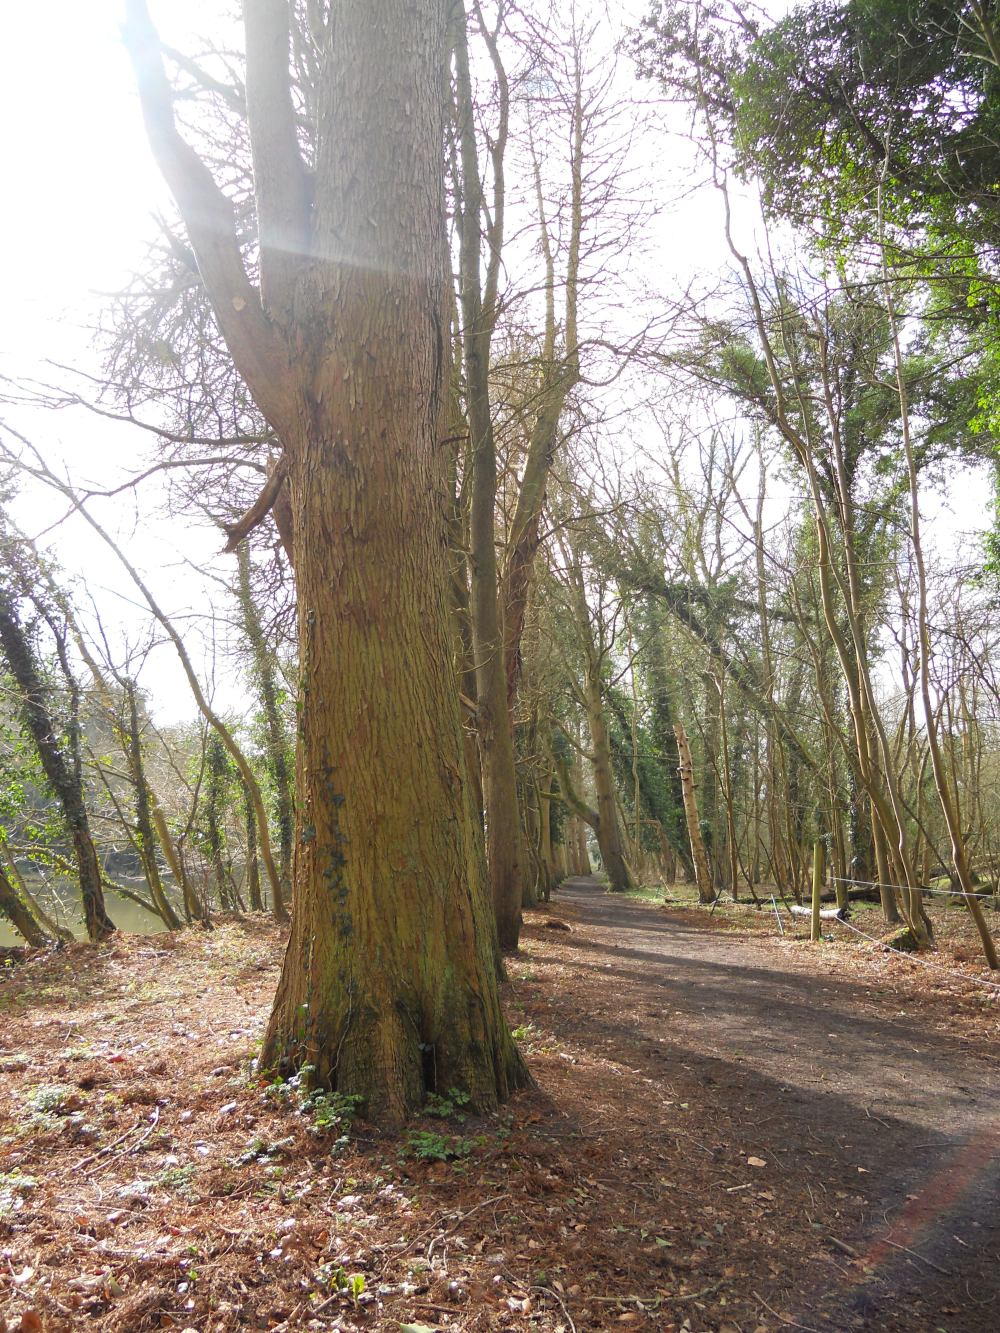 Footpath from Cookham to Maidenhead